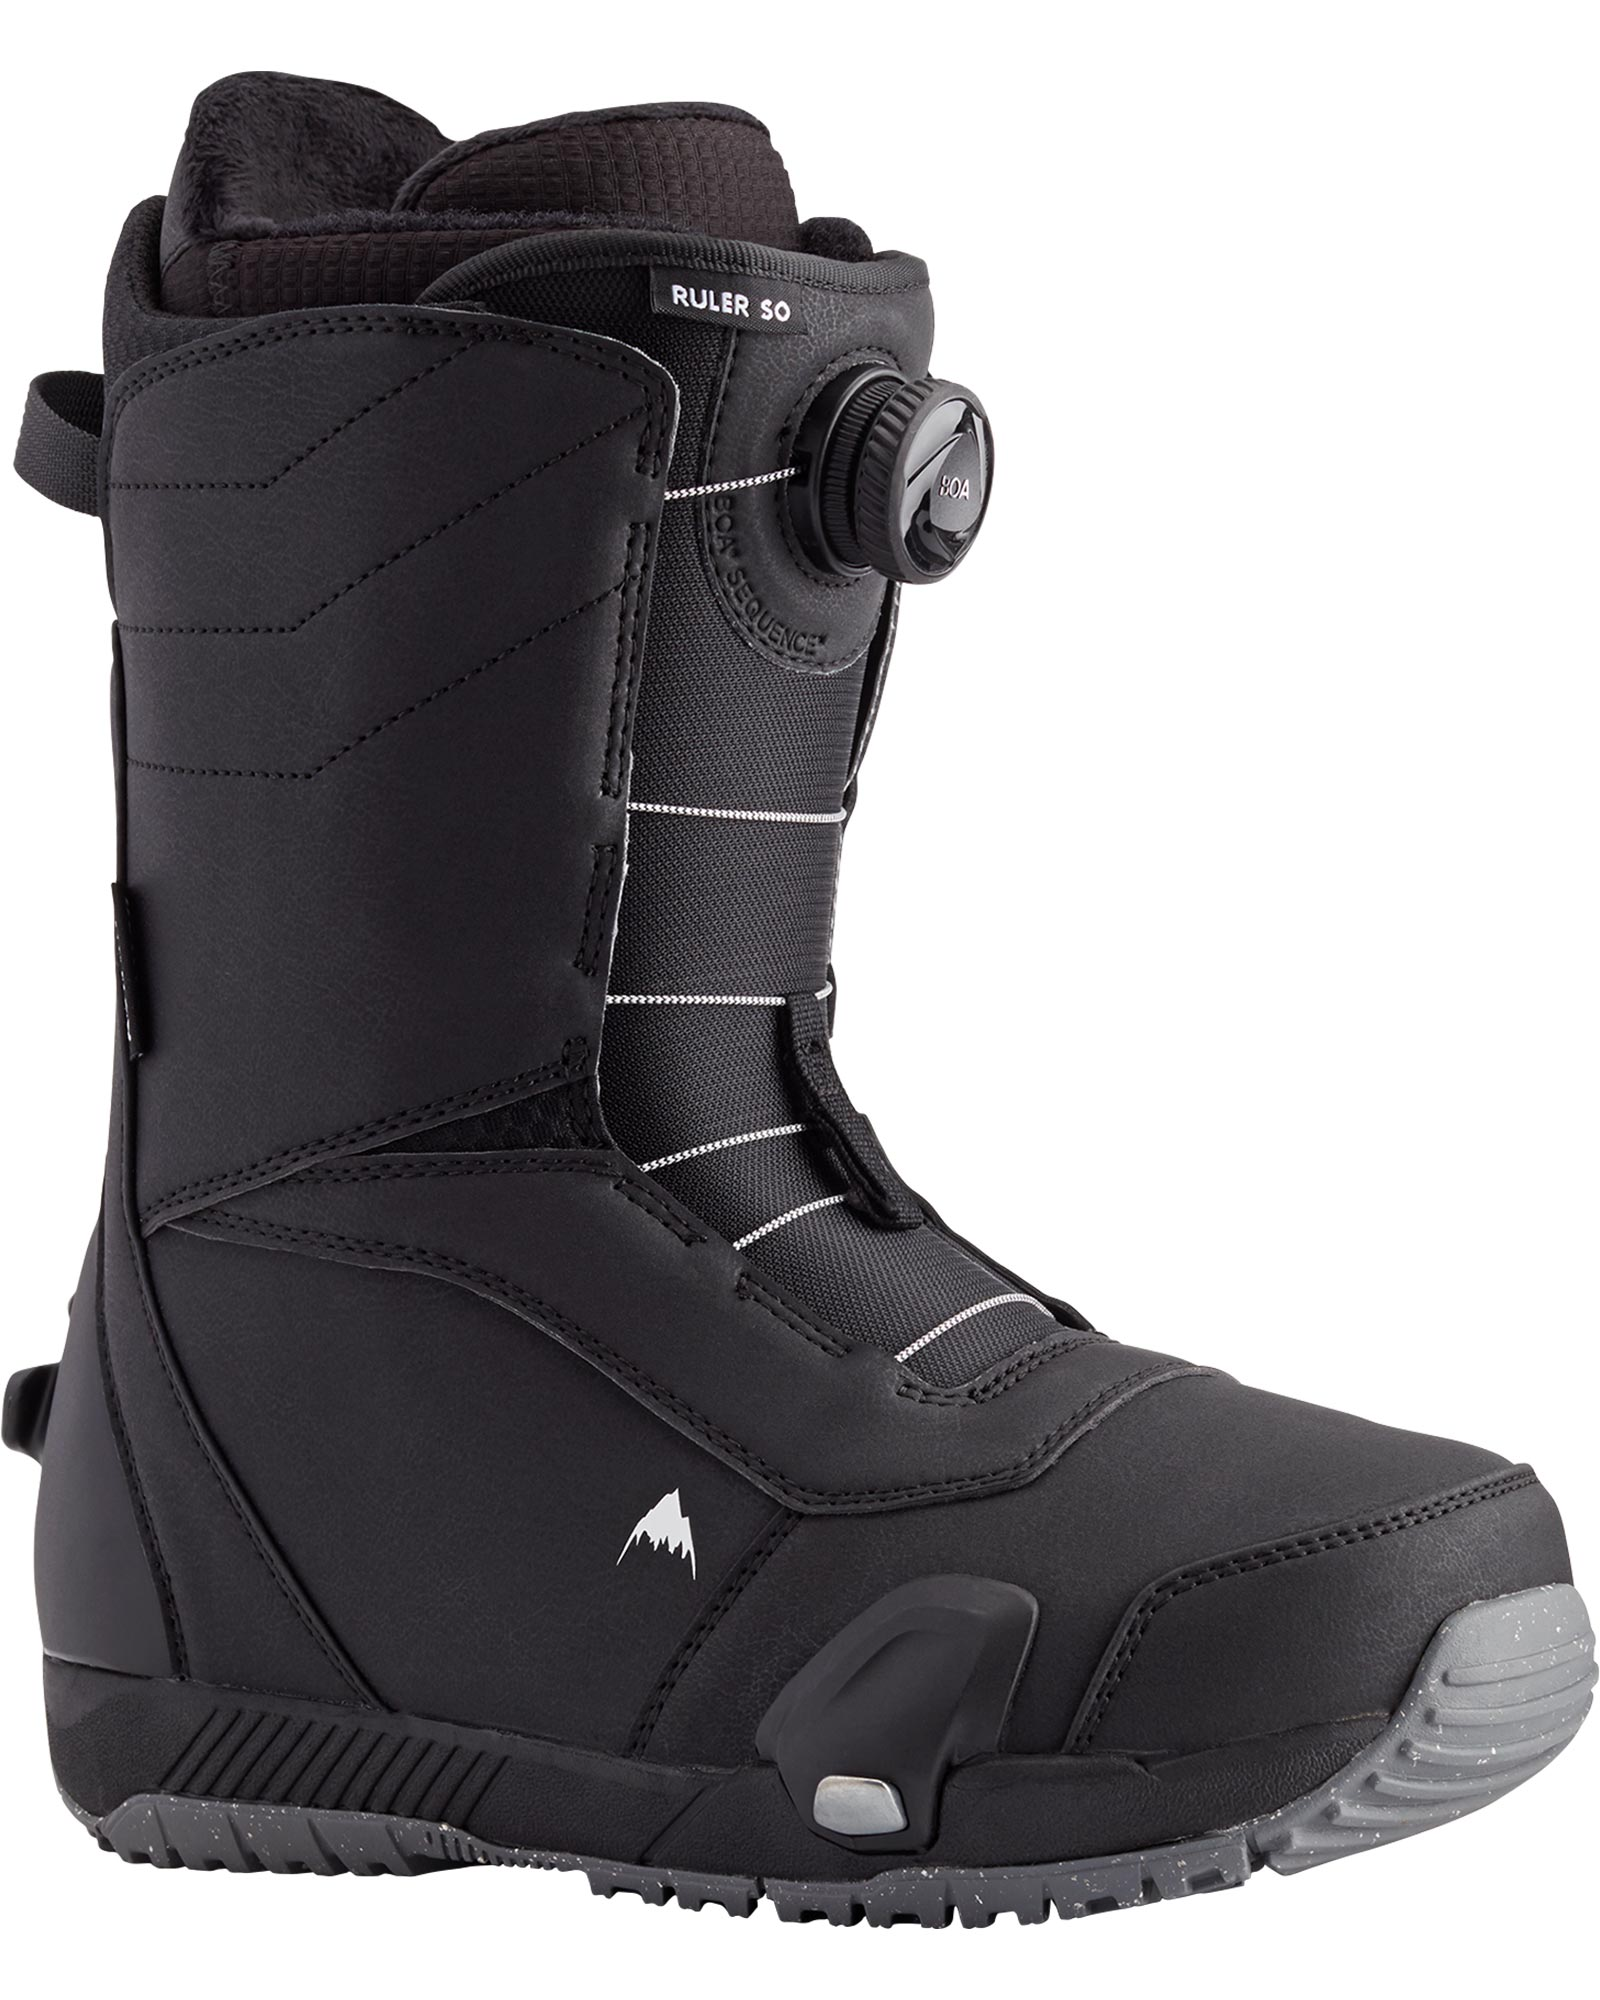 Burton Ruler BOA Step On Men's Snowboard Boots 2021 0